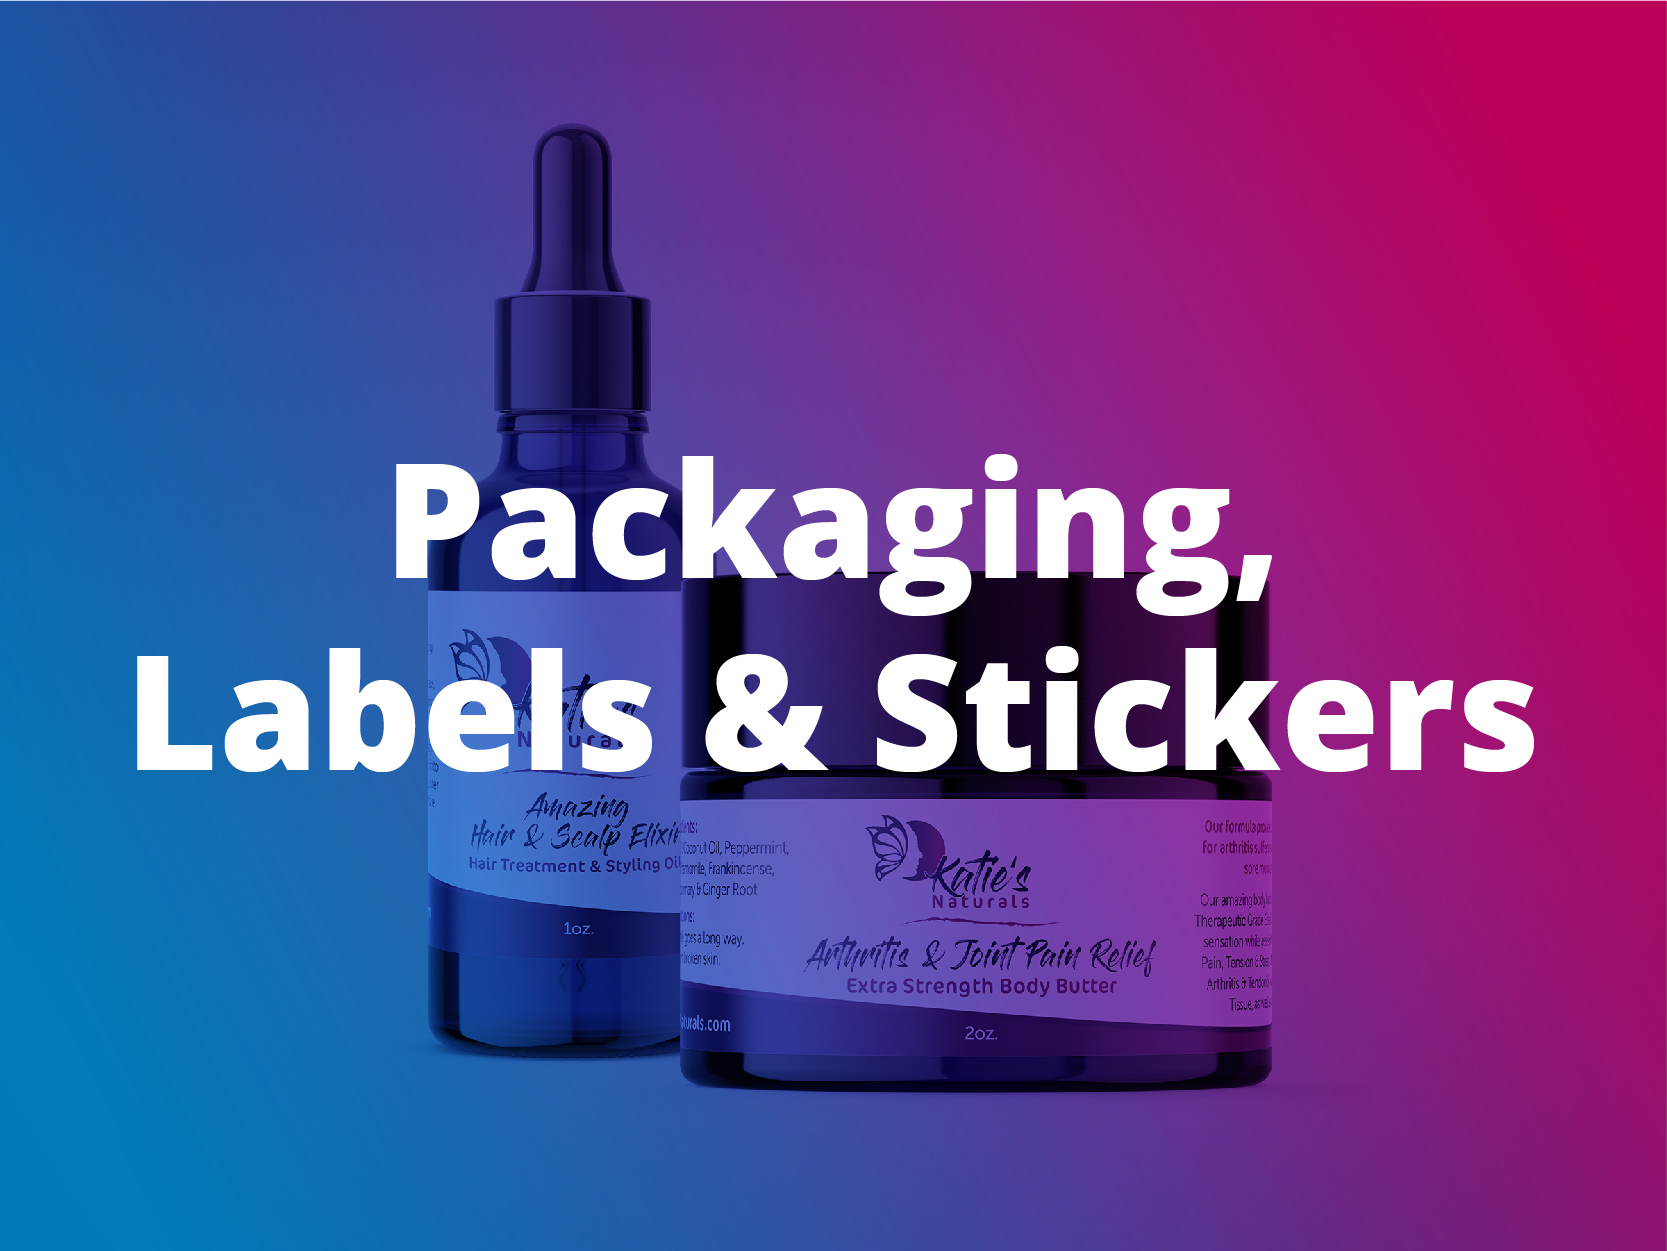 Packaging, Labels & Stickers